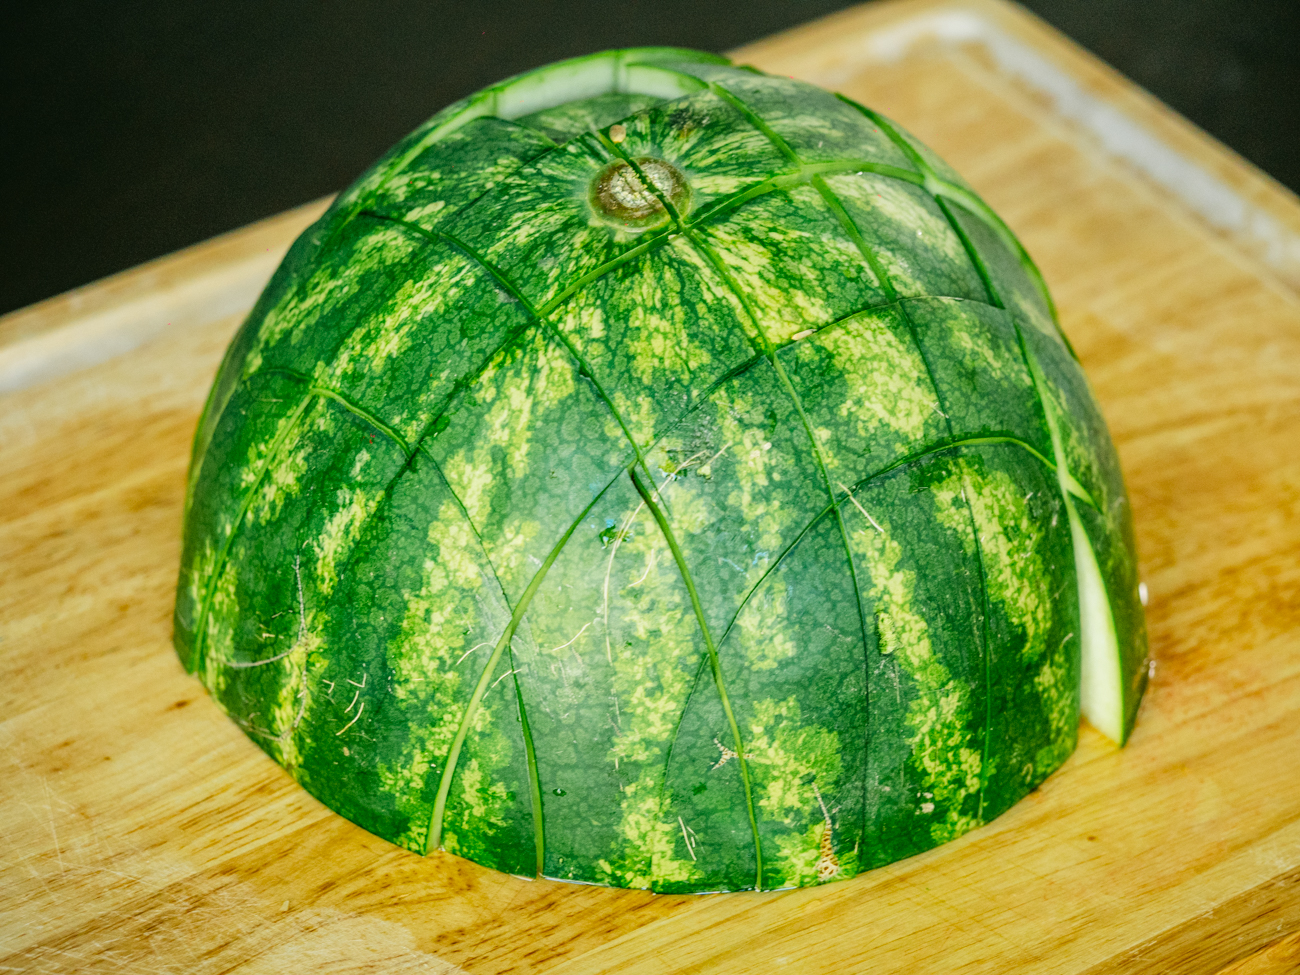 Watermelon Cutting Horizontal 1